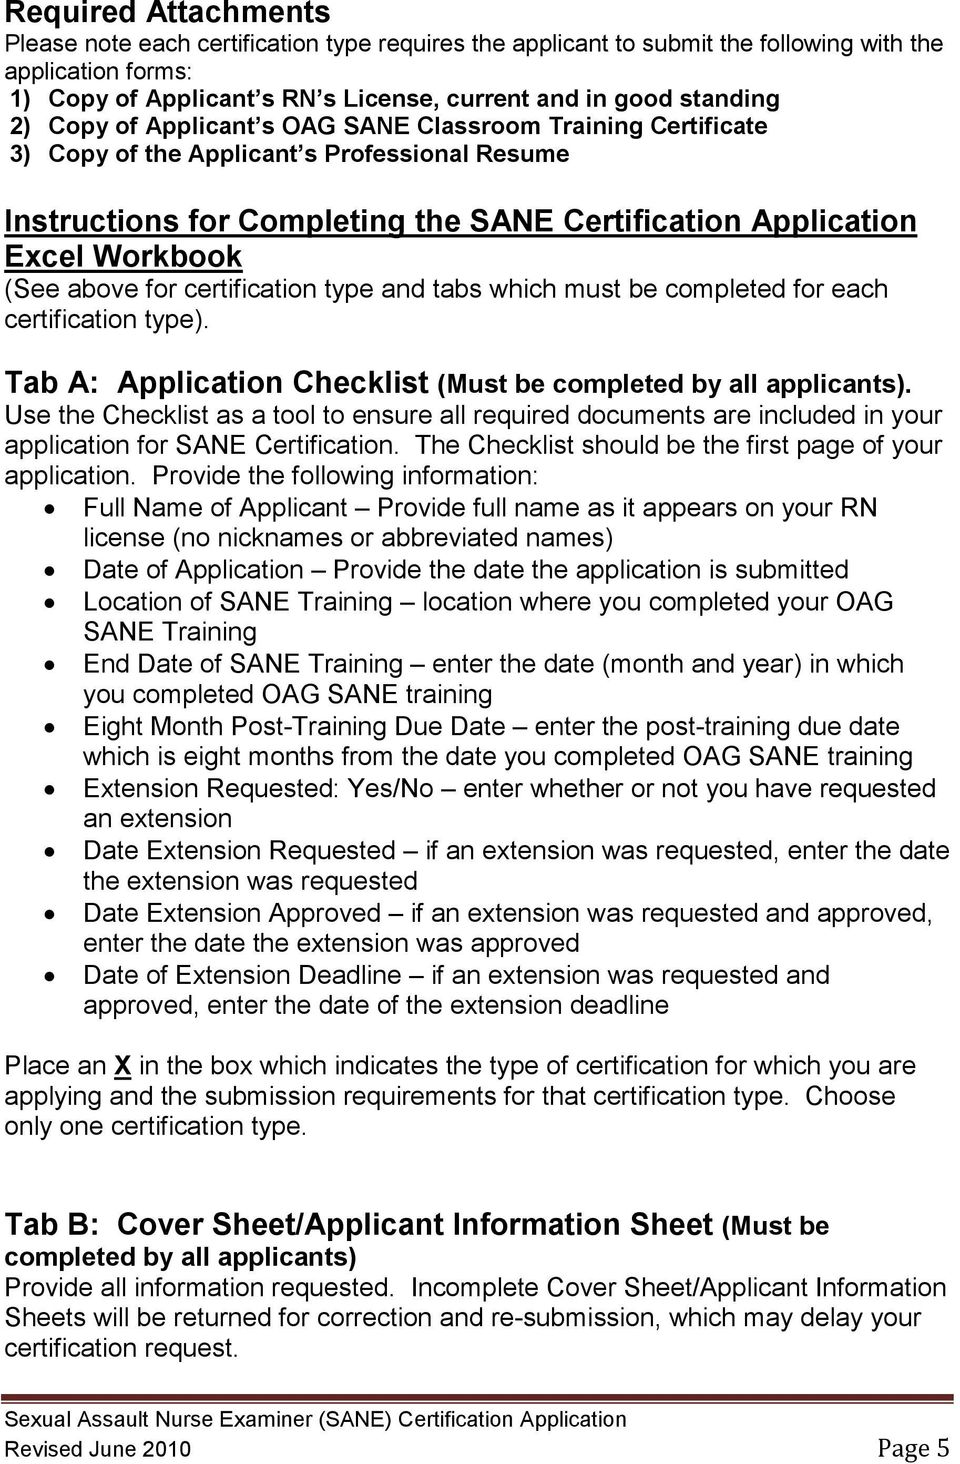 Sexual assault nurse examiners sane certification application for certification type and tabs which must be completed for each certification type tab 1betcityfo Images